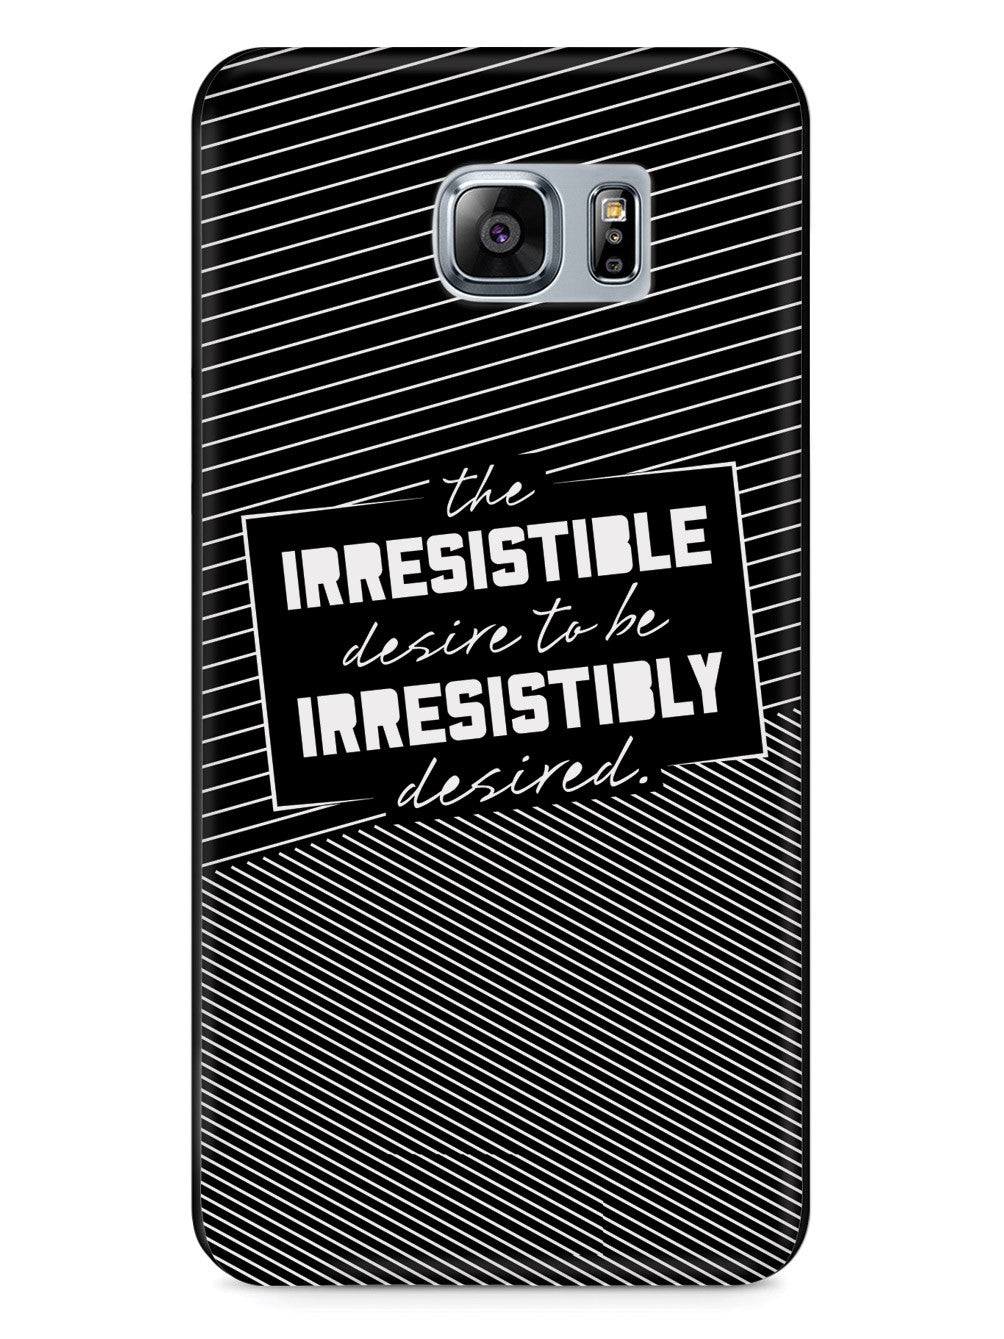 So Irresistible Case